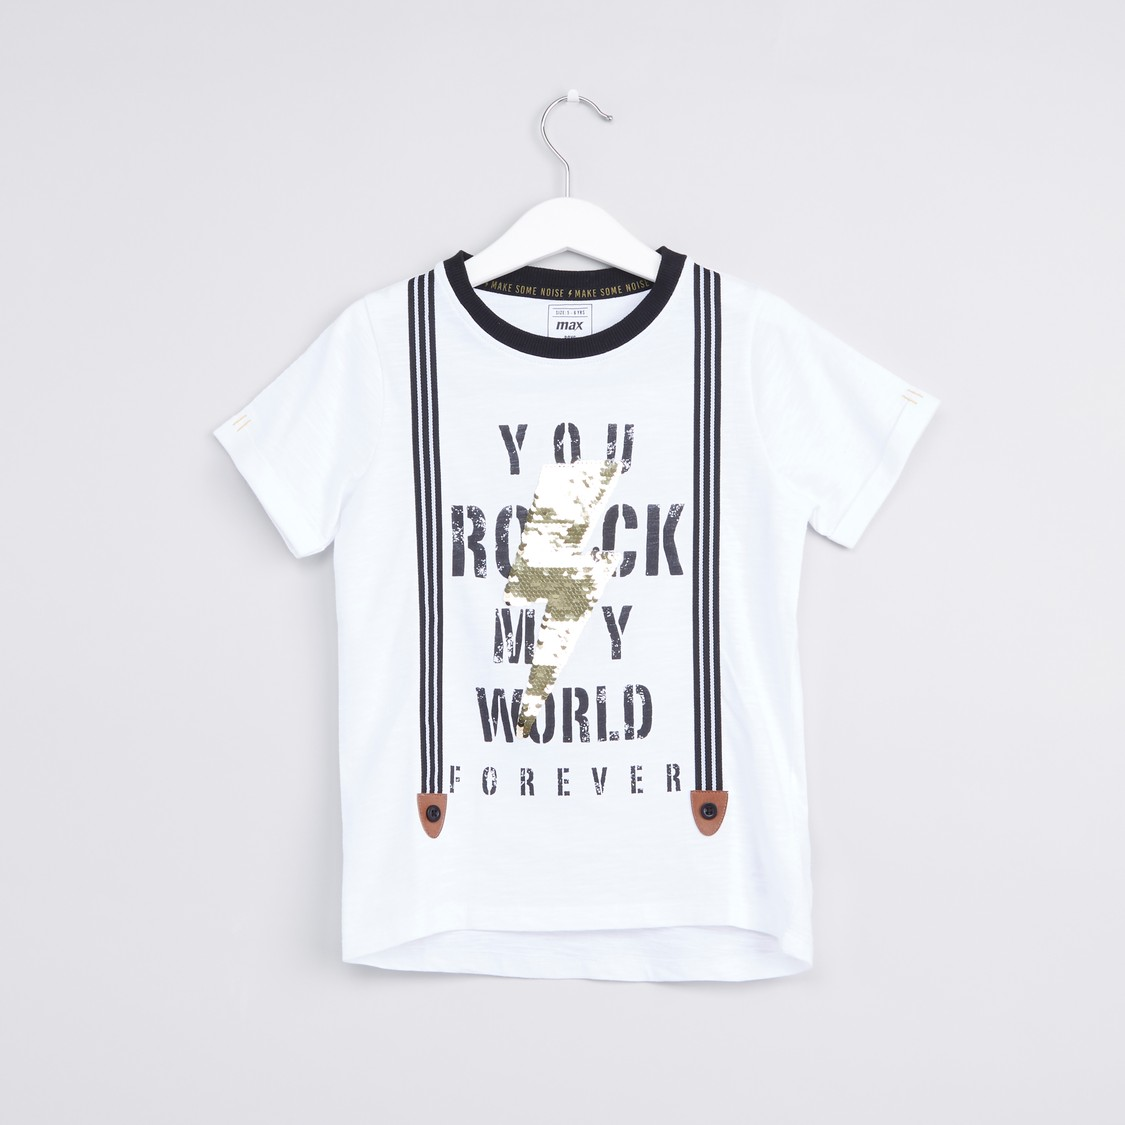 Embellished Typographic Print Round Neck T-shirt with Long Sleeves